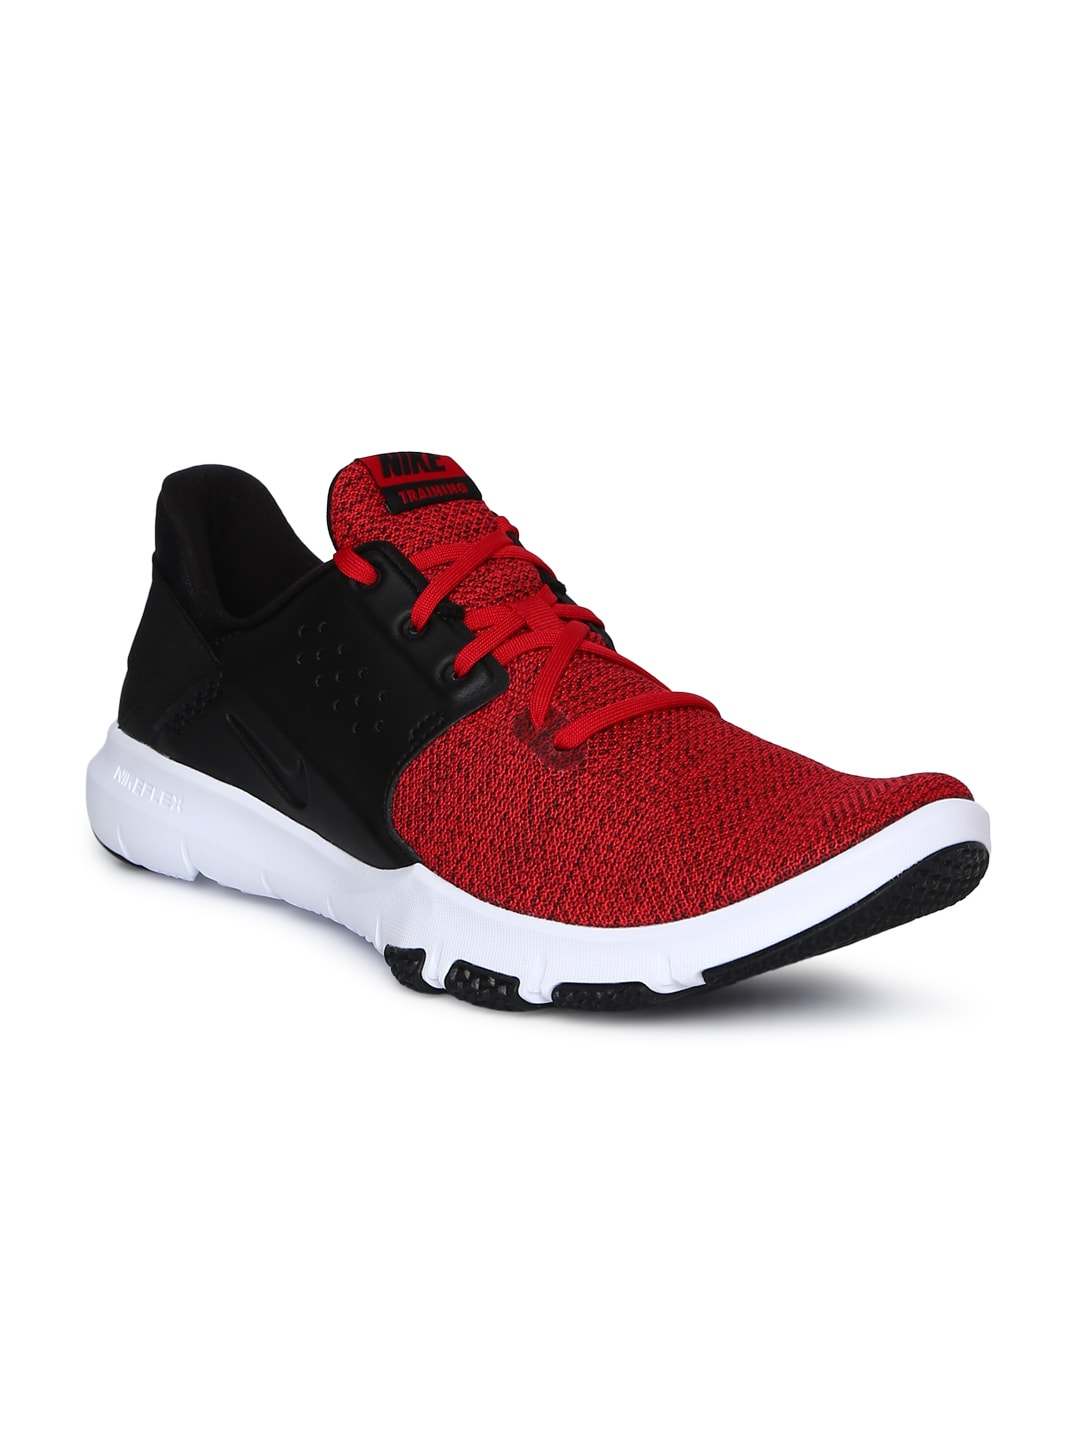 hot sale online 397d1 a0eff Nike Men Red & Black FLEX CONTROL TR3 Training Shoes